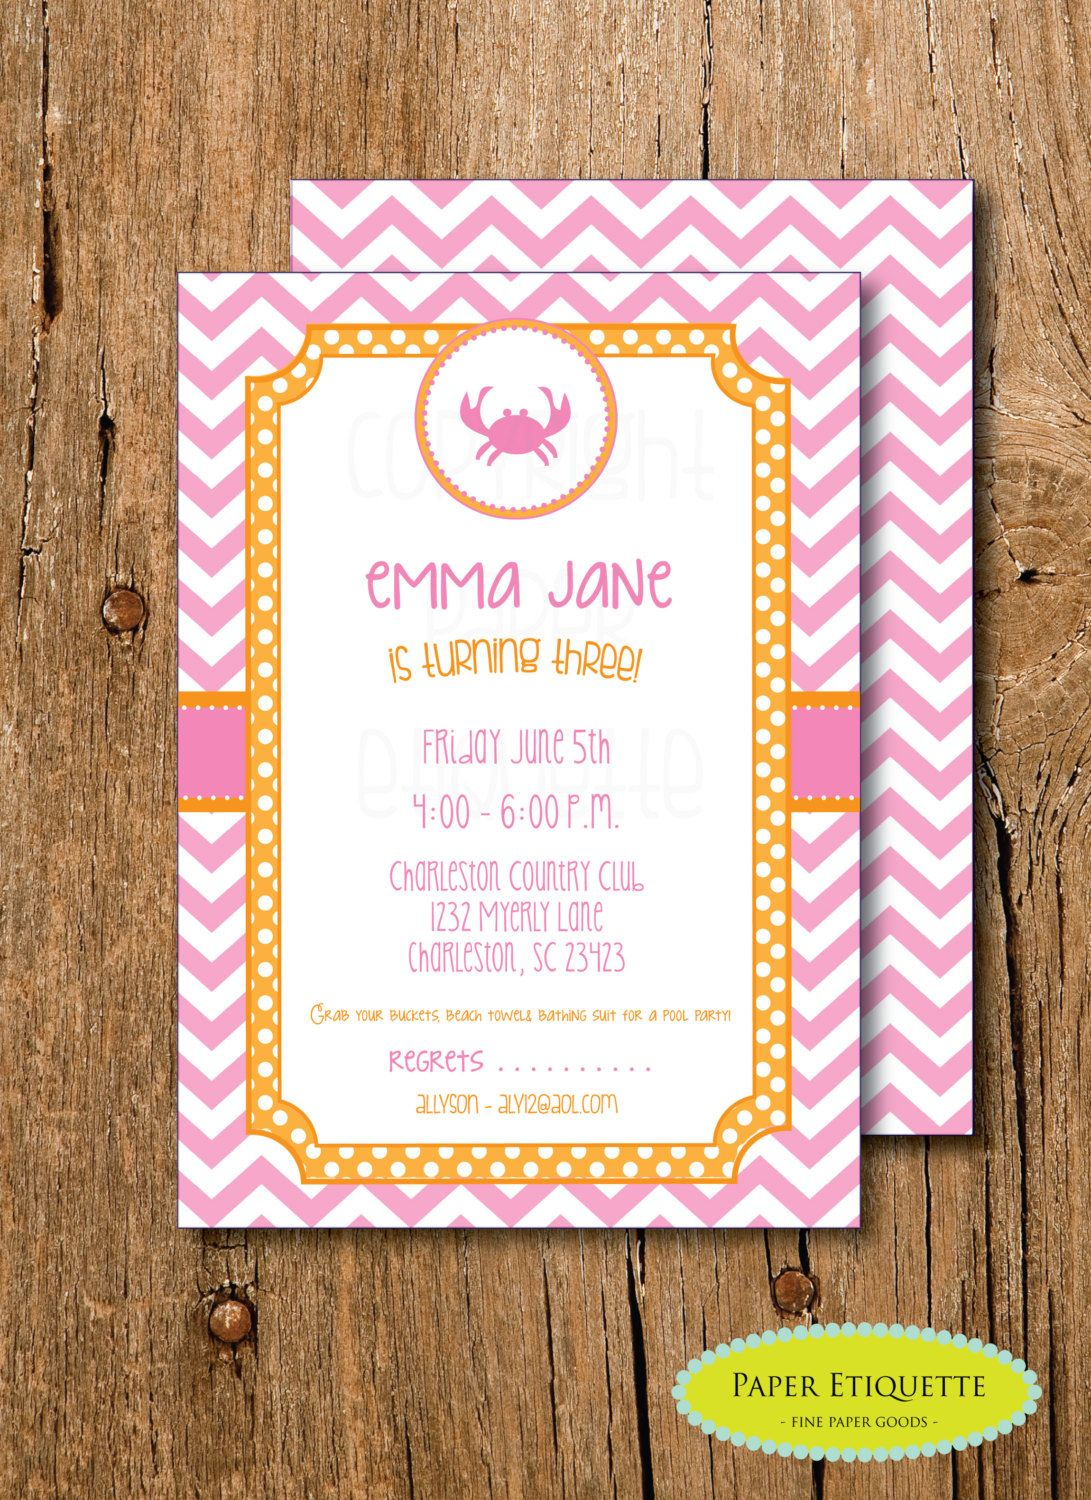 Preppy pink crab chevron baby shower birthday party or crab feast preppy pink crab chevron baby shower birthday party or crab feast crab boil invite print your own invitation by paperetiquette on etsy filmwisefo